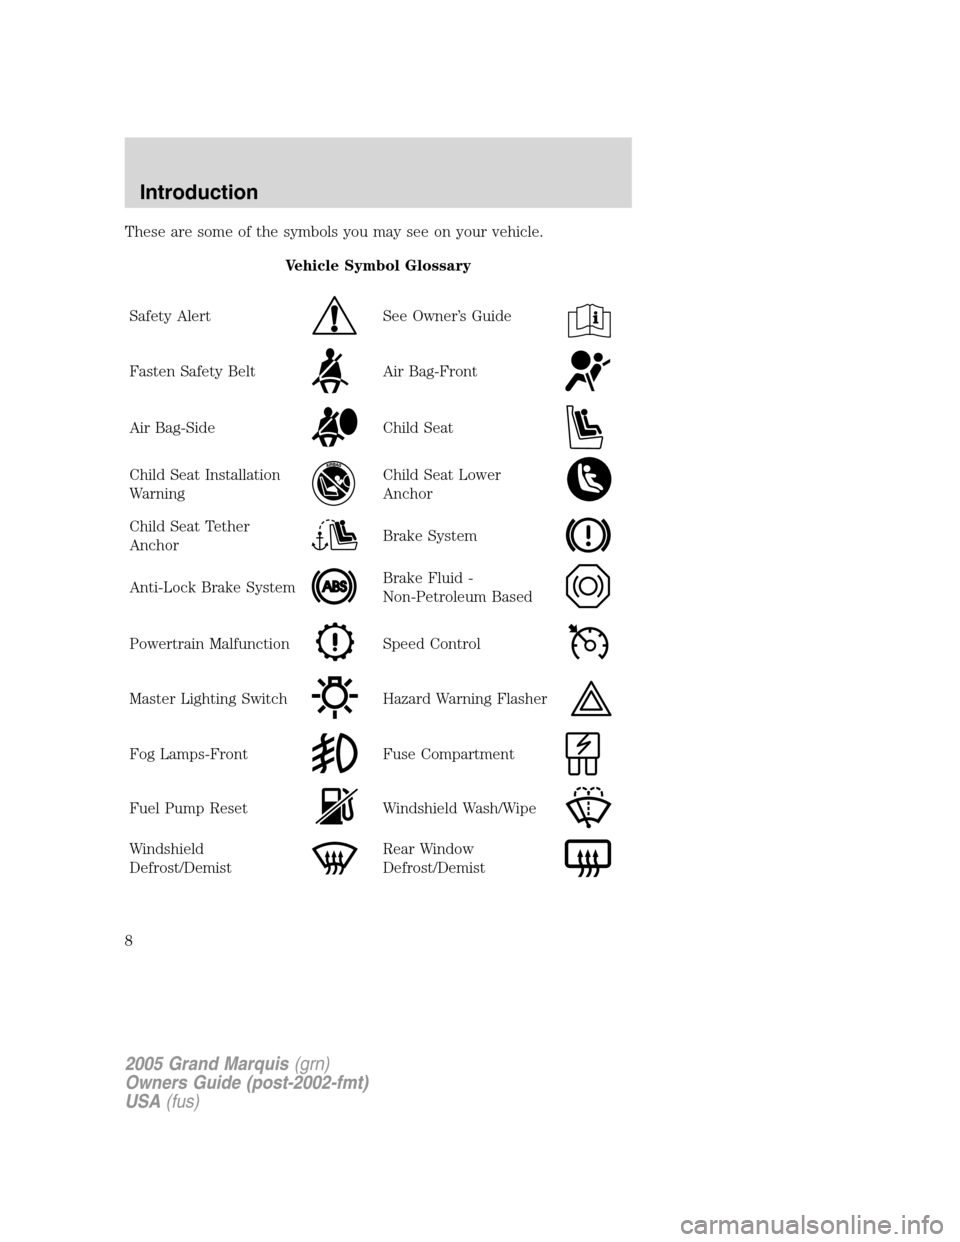 Mercury Grand Marquis 2005  Owners Manuals These are some of the symbols you may see on your vehicle. Vehicle Symbol Glossary Safety Alert See Owner's Guide Fasten Safety BeltAir Bag-Front Air Bag-SideChild Seat Child Seat Installation Warni